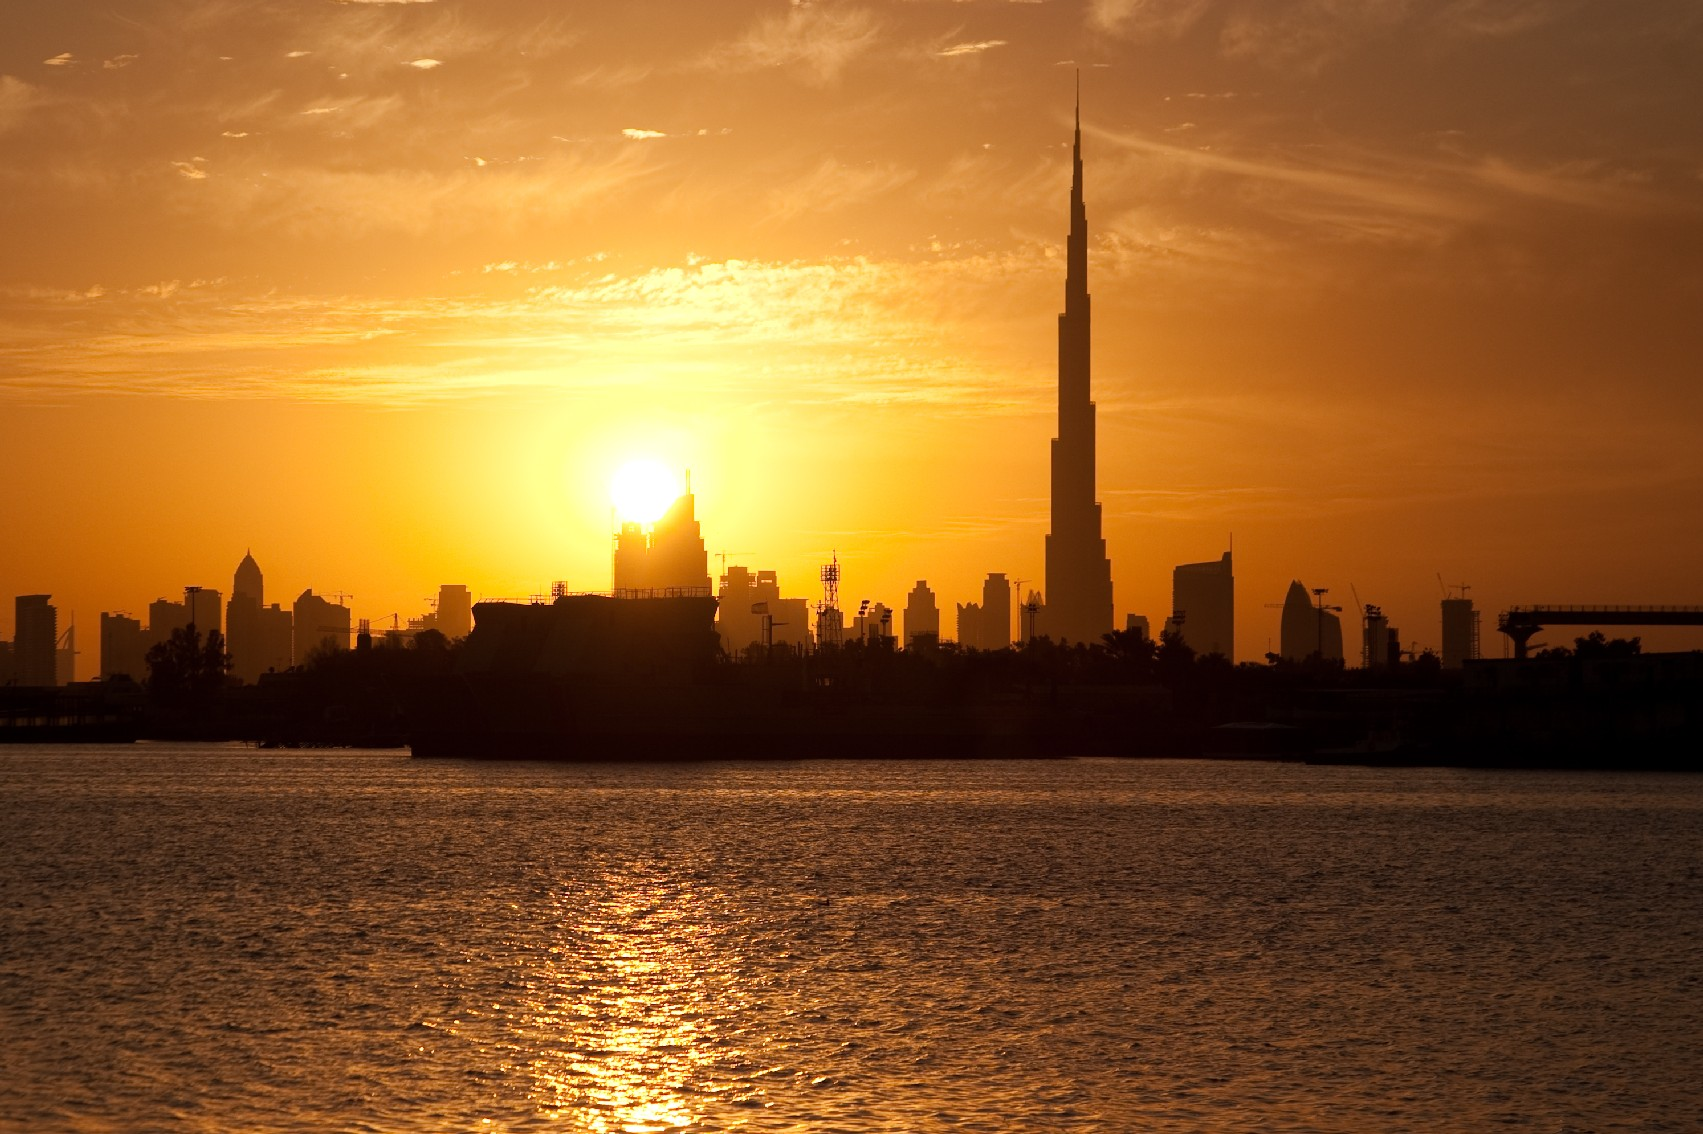 Dubai (foto: The Dead Pixel/Flickr-Creative Commons)